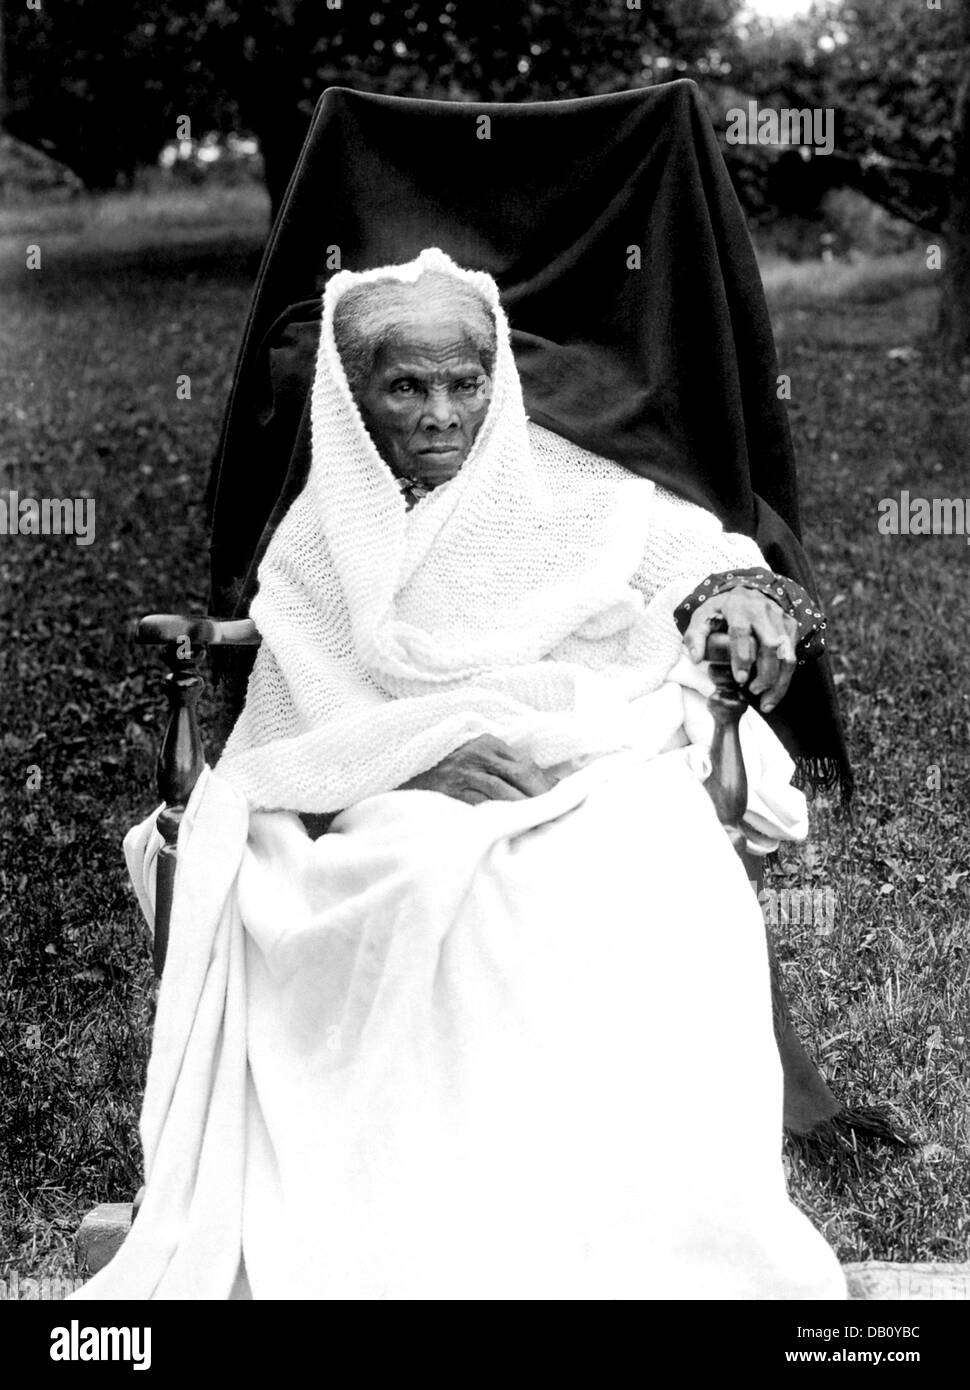 HARRIET TUBMAN (1820-1913) Abolitionist and Union spy during the American Civil War, photographed in 1911 - Stock Image